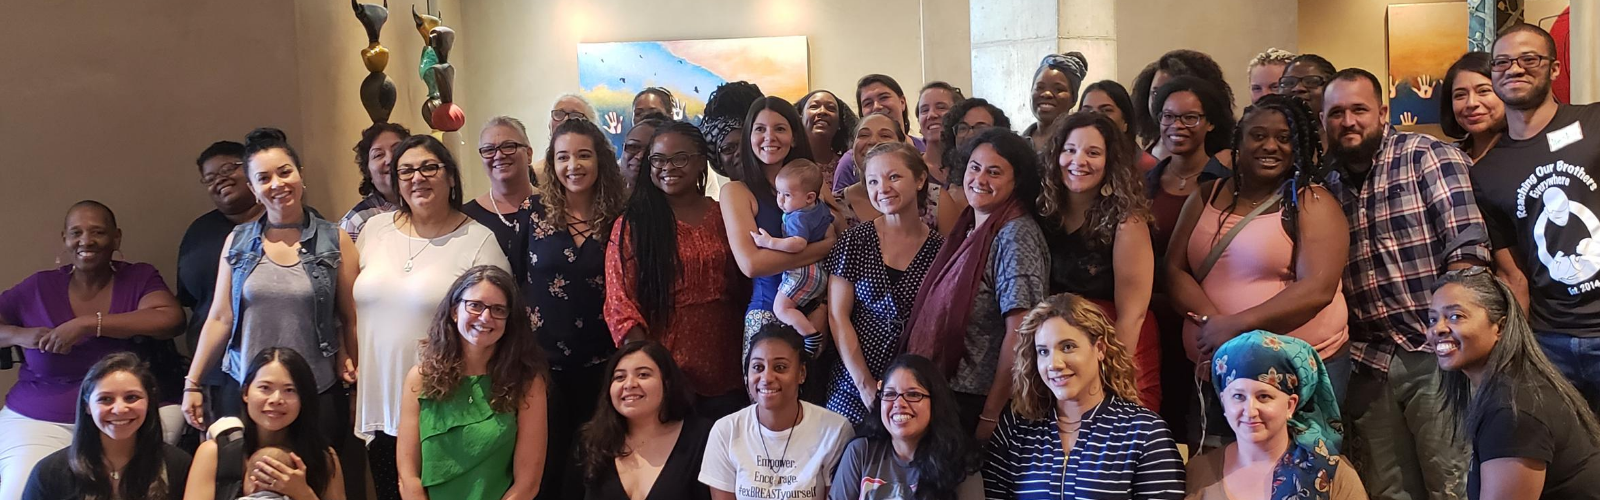 a diverse crowd of birth workers posed together